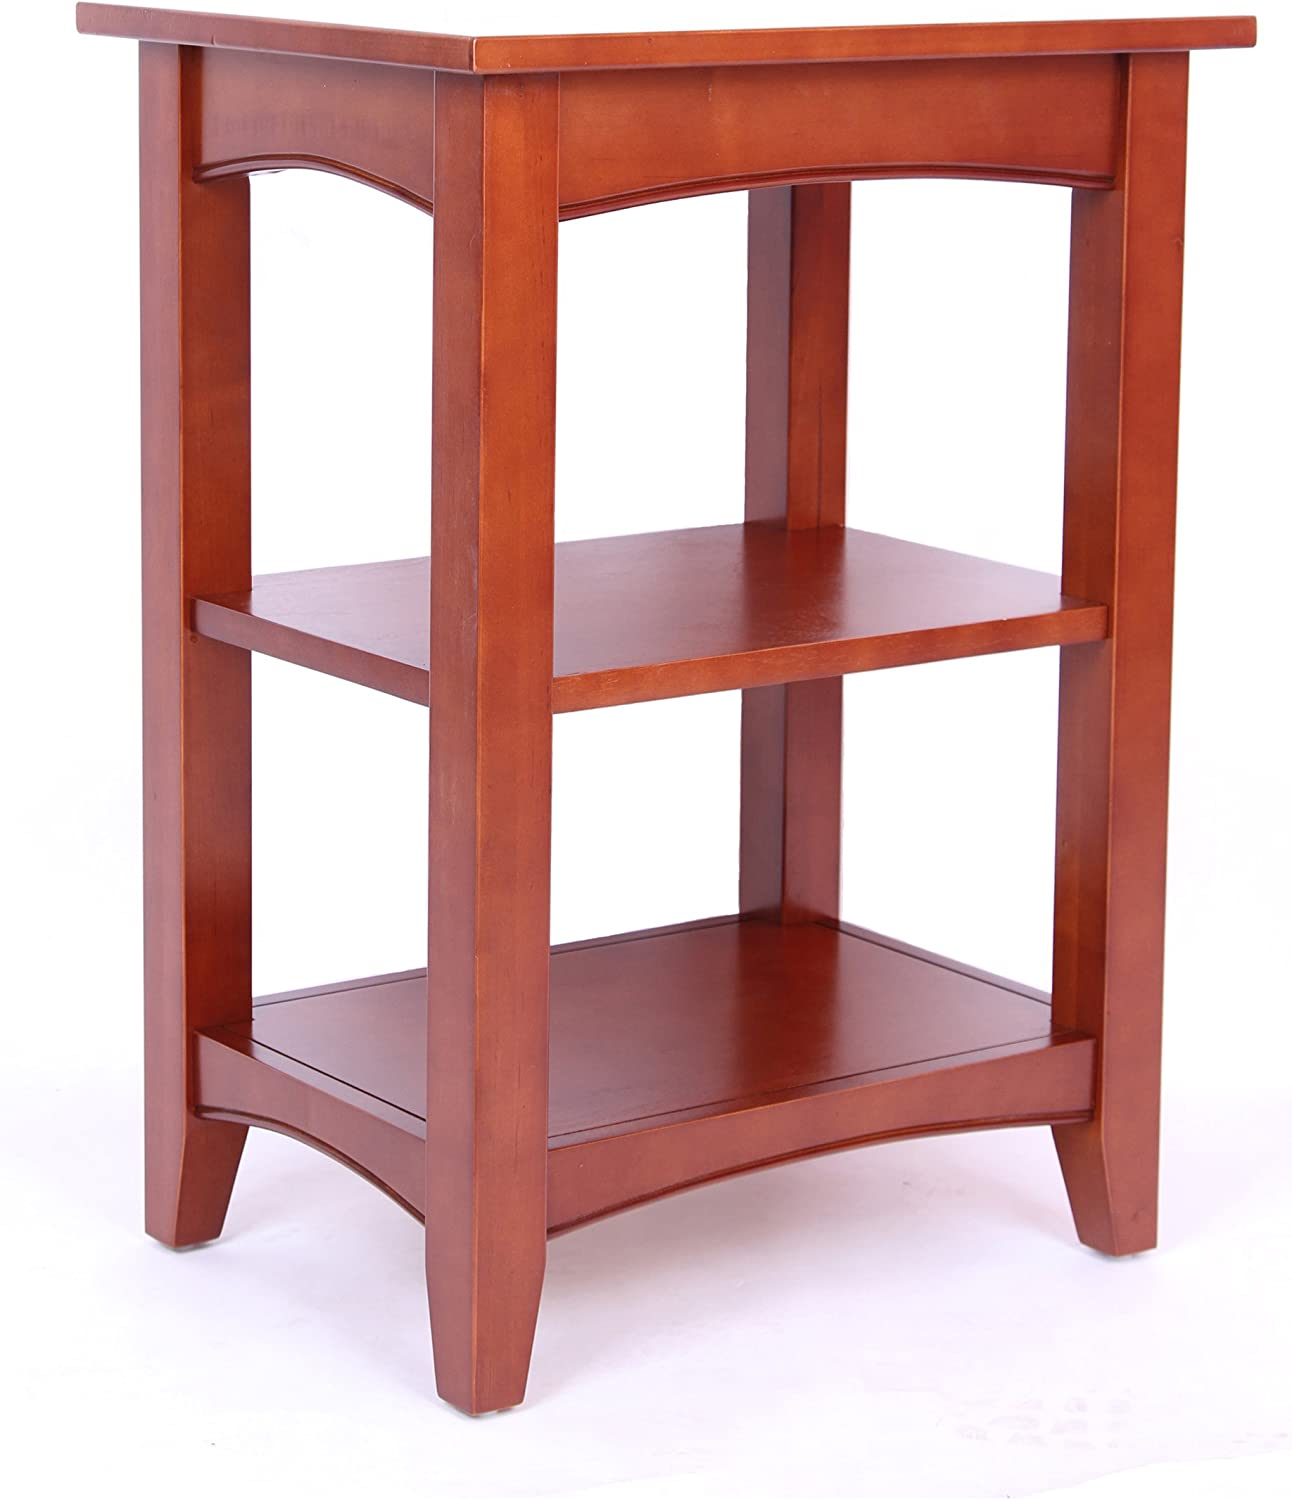 Shaker Cottage End Table with 2 Shelves, Cherry